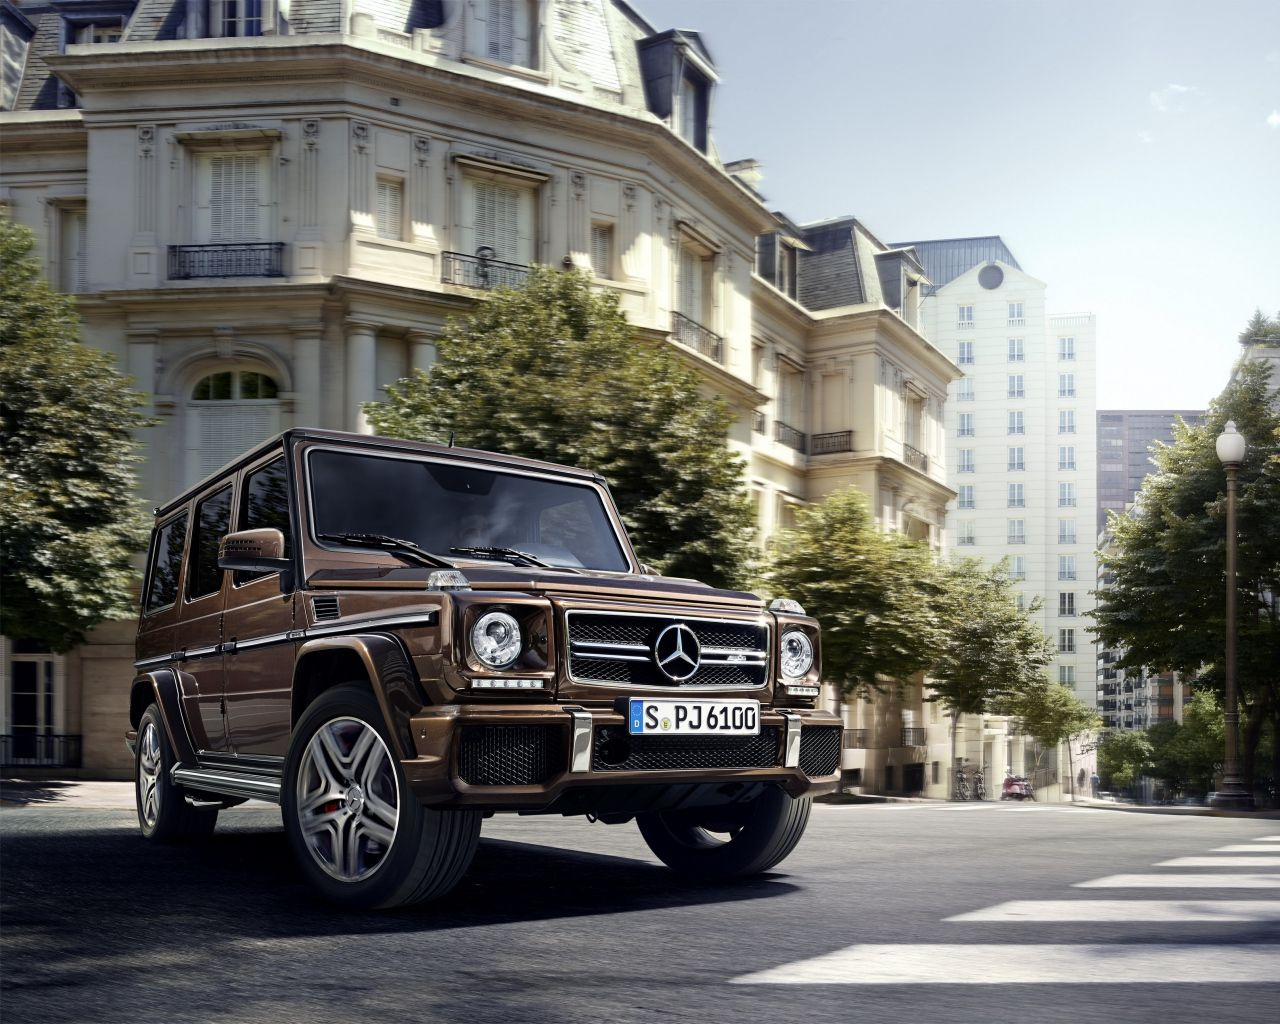 Wallpaper Mercedes Amg G63 Cars Wallpapers Hd 12801024 With